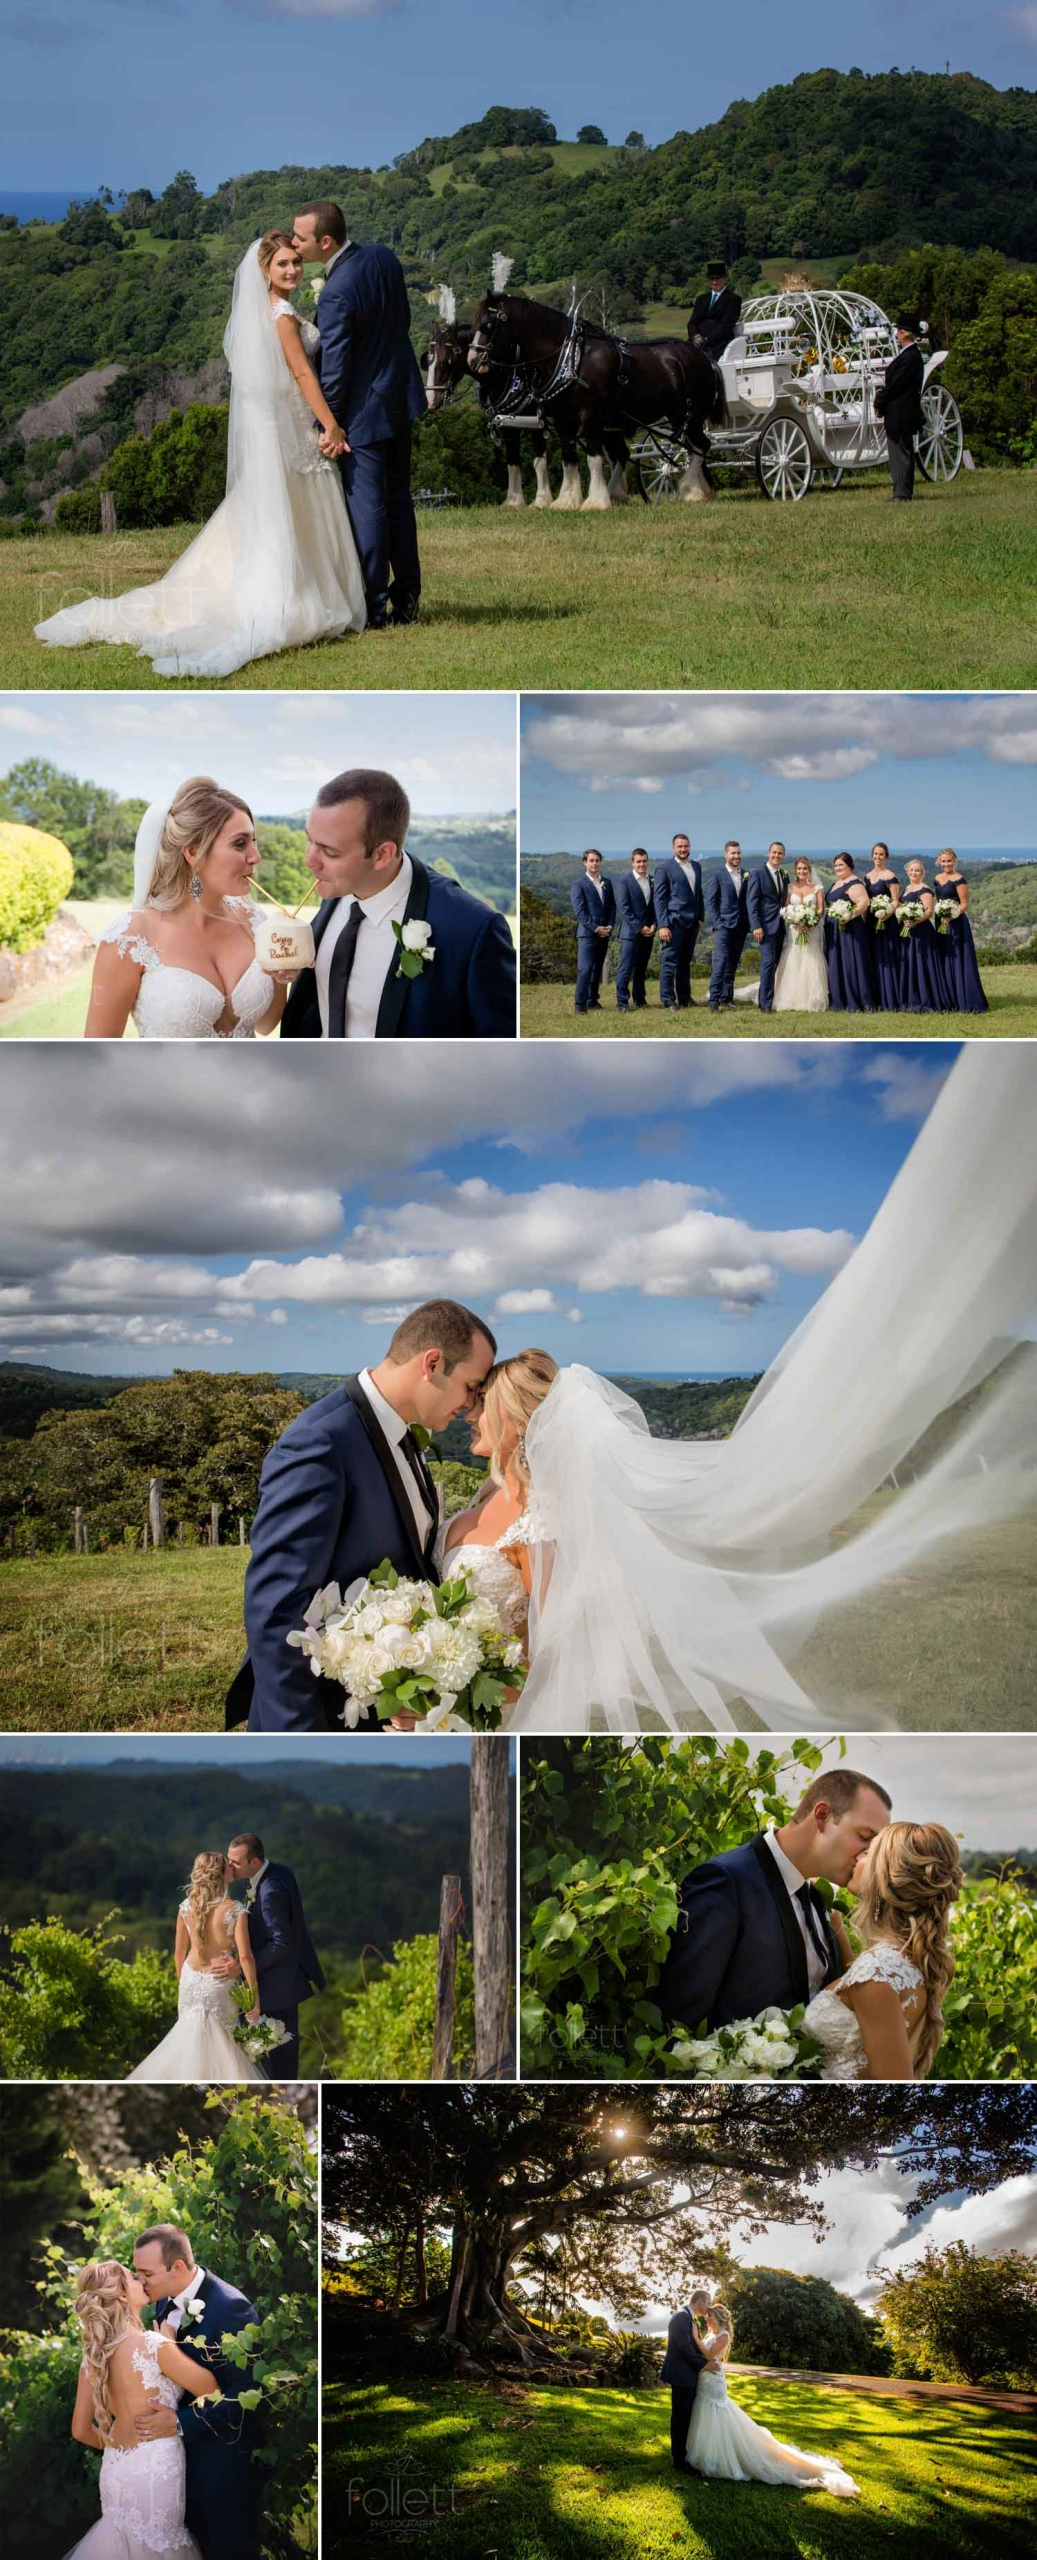 Wedding Photos at Summergrove Estate by Follett Photography